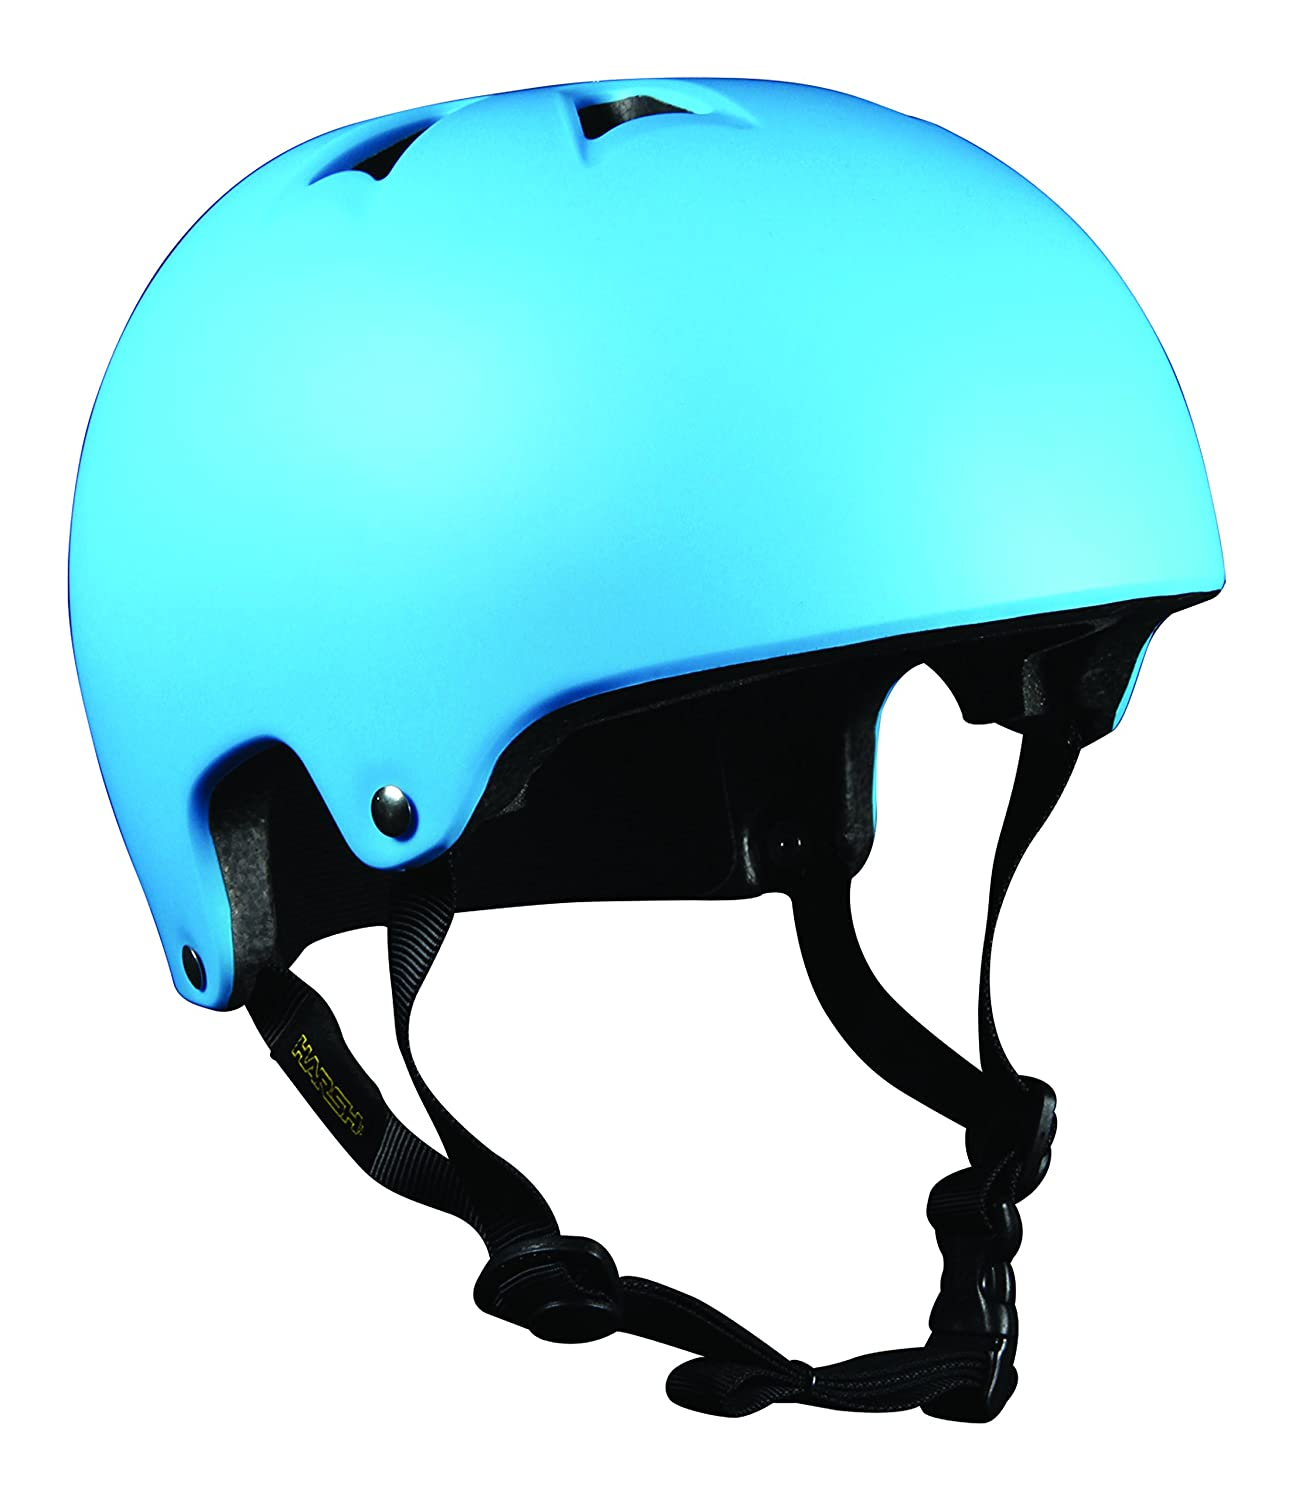 Harsh Hx1 Pro Fahrradhelm 8FGL8|#Harsh 204-254-P